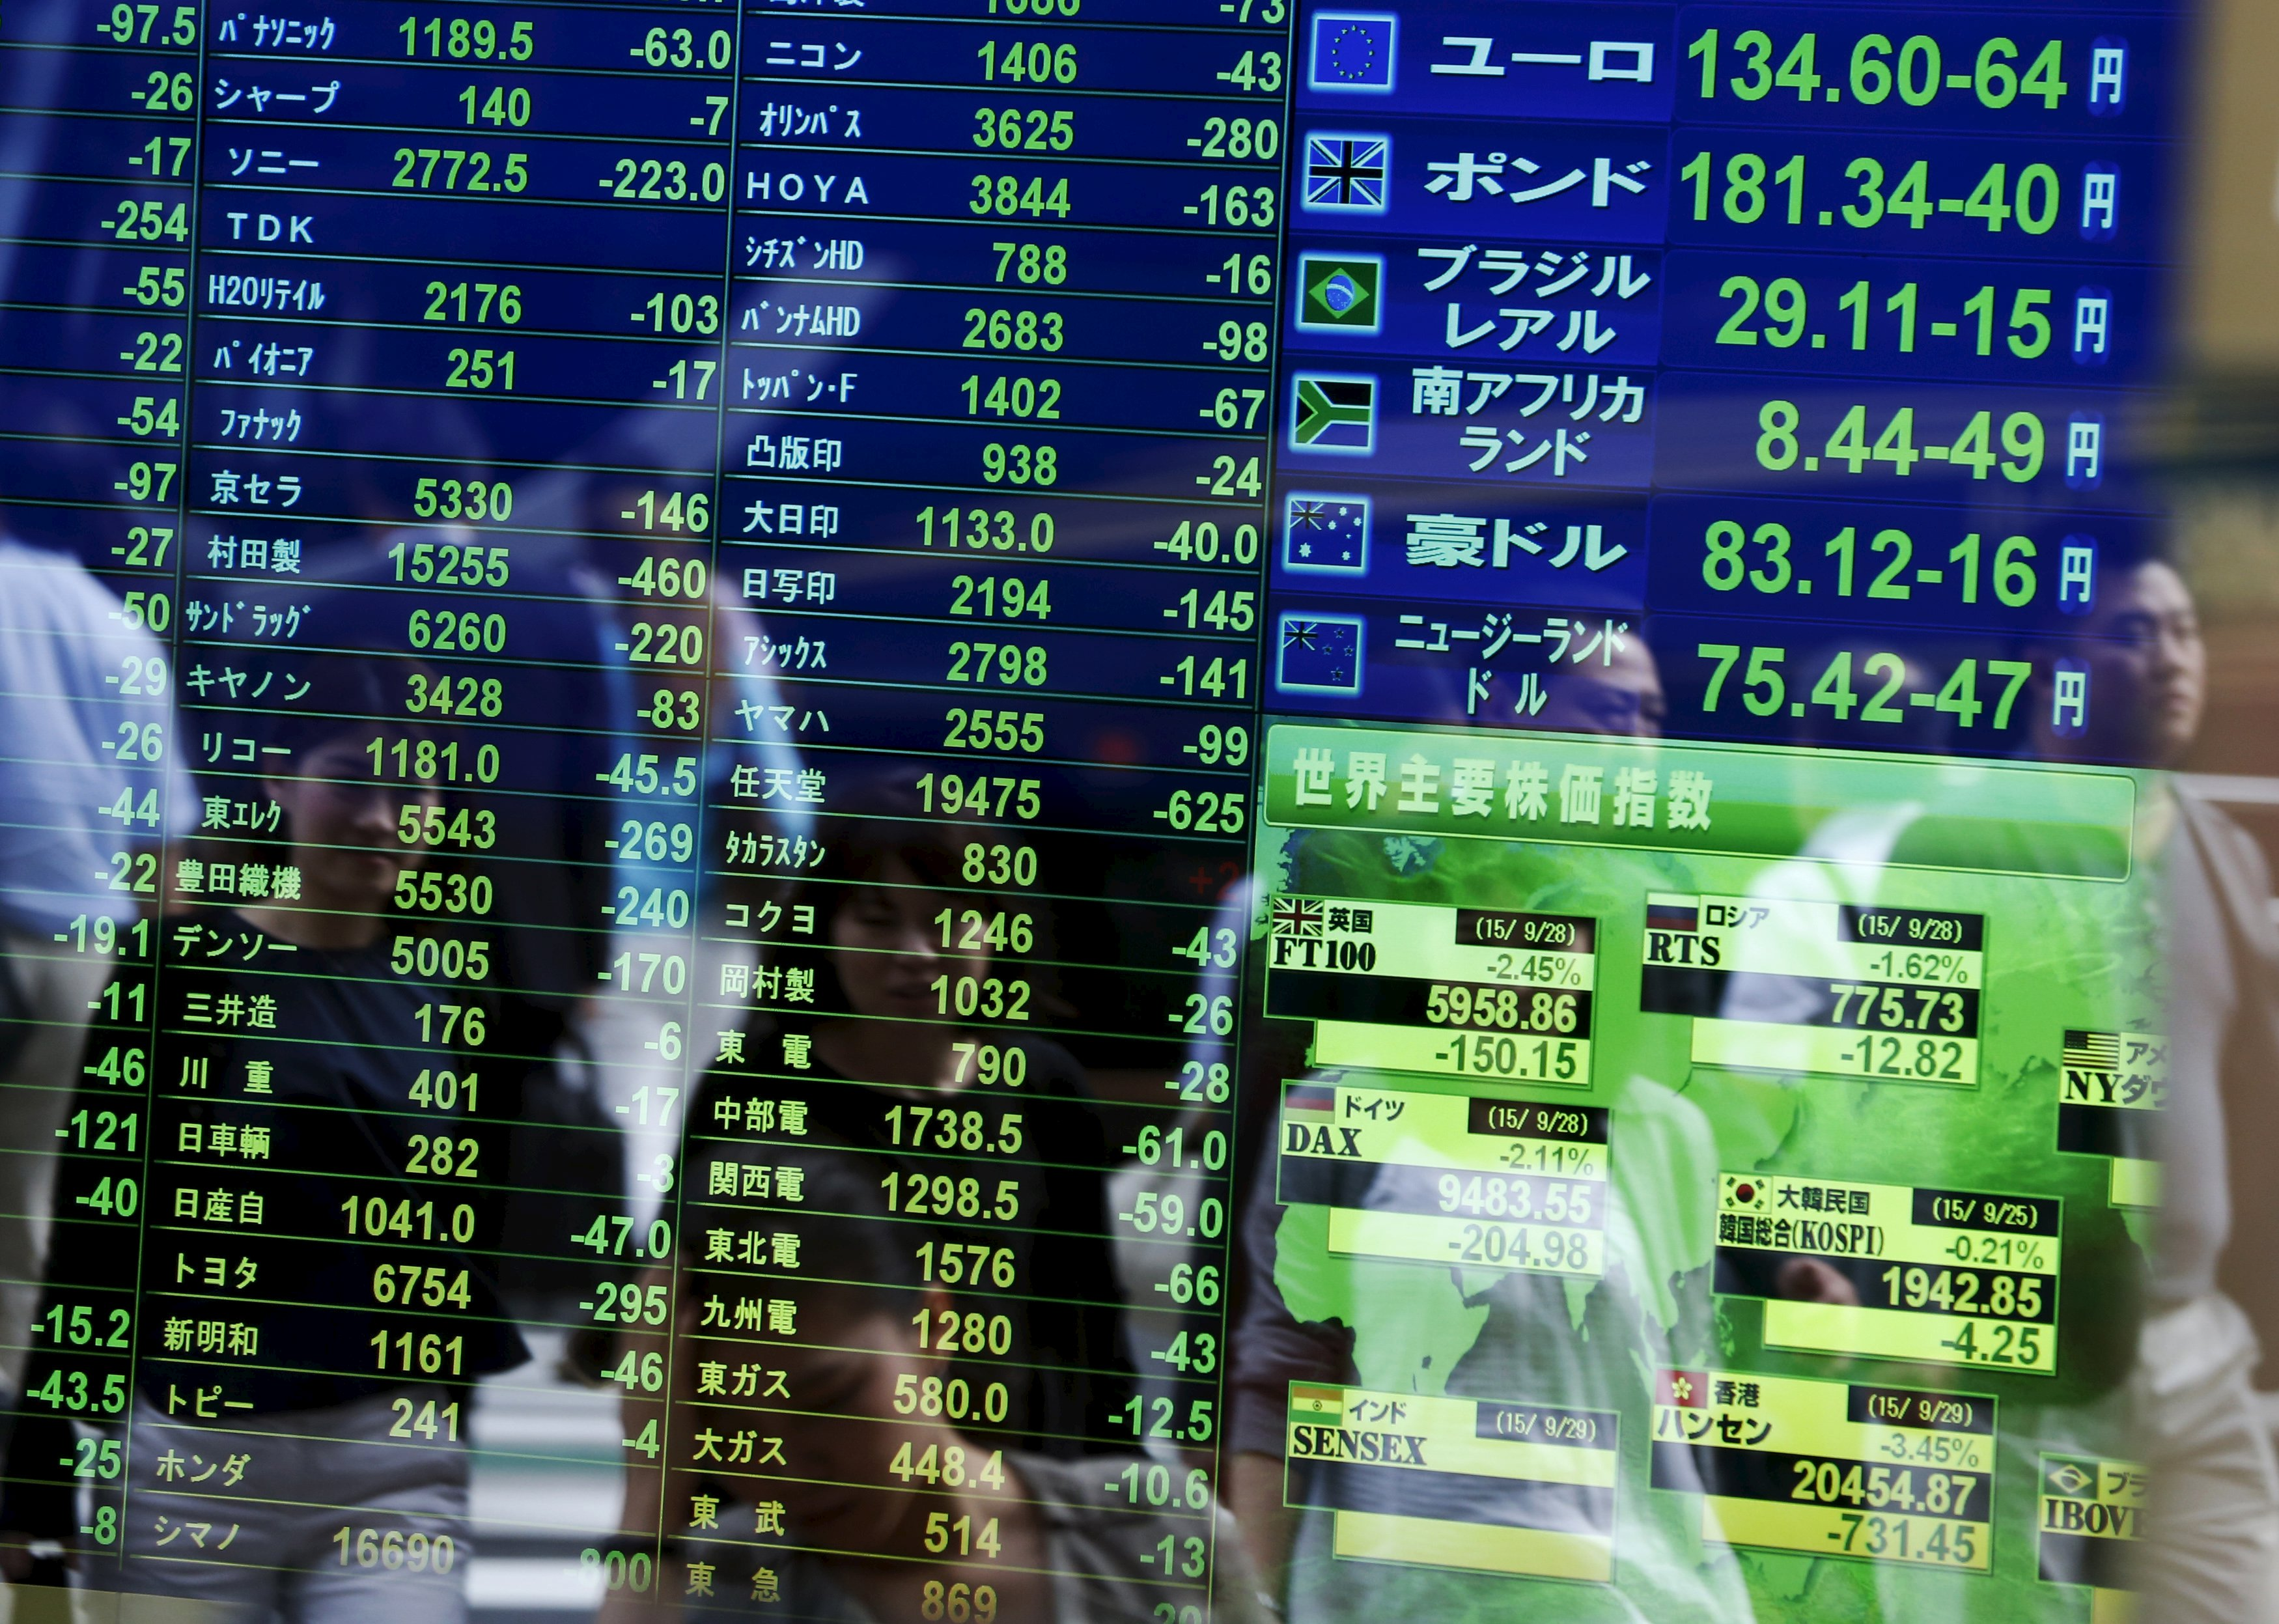 Passersby are reflected on a screen displaying  stock quotation, the stock market indices of various countries (bottom right) and exchange rates (top right) at a brokerage in Tokyo, Japan, September 29, 2015. Photo: Reuters